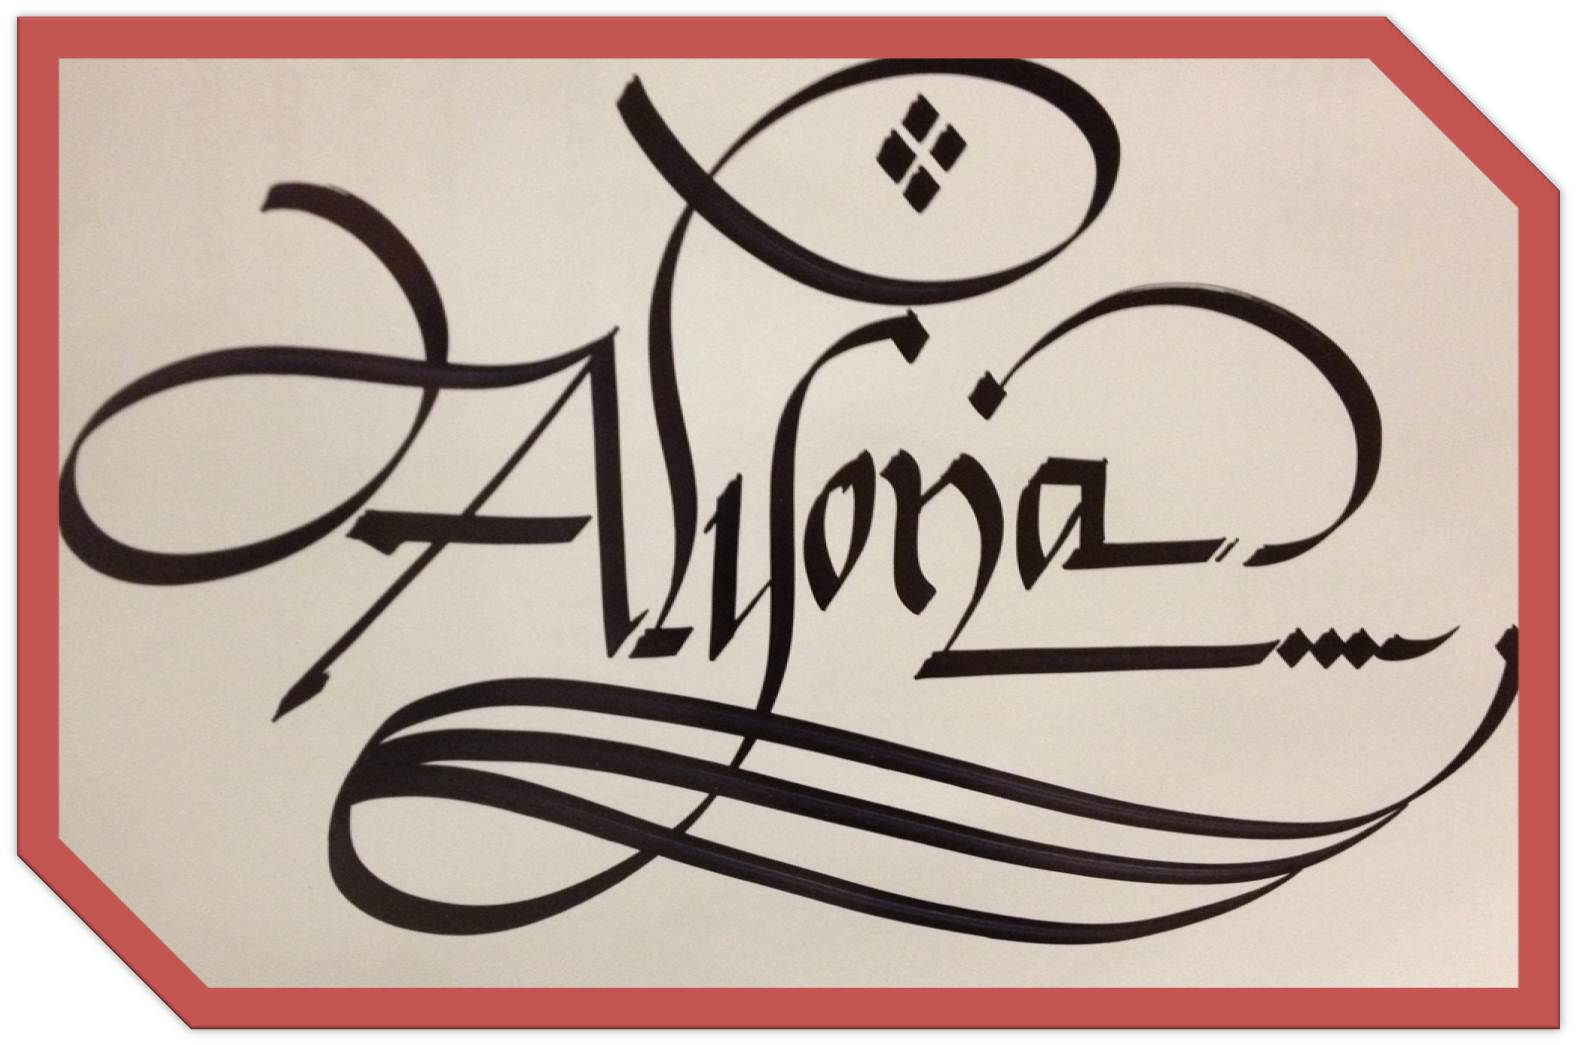 Calligraphy Art Russian Names In Calligraphy Alyona